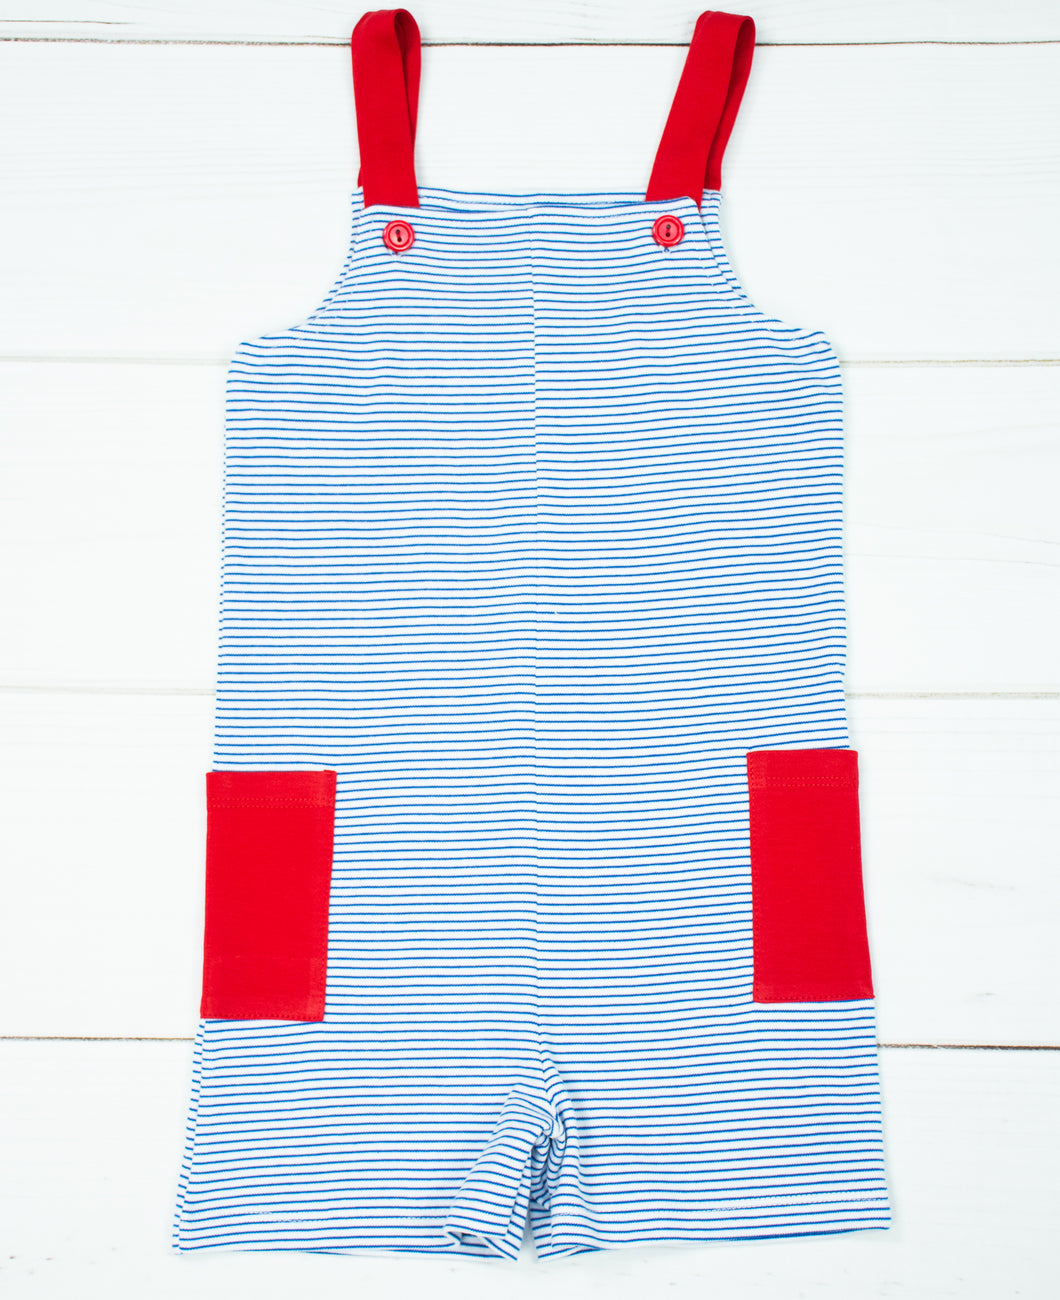 Pima Royal stripes Harry/ red contrast